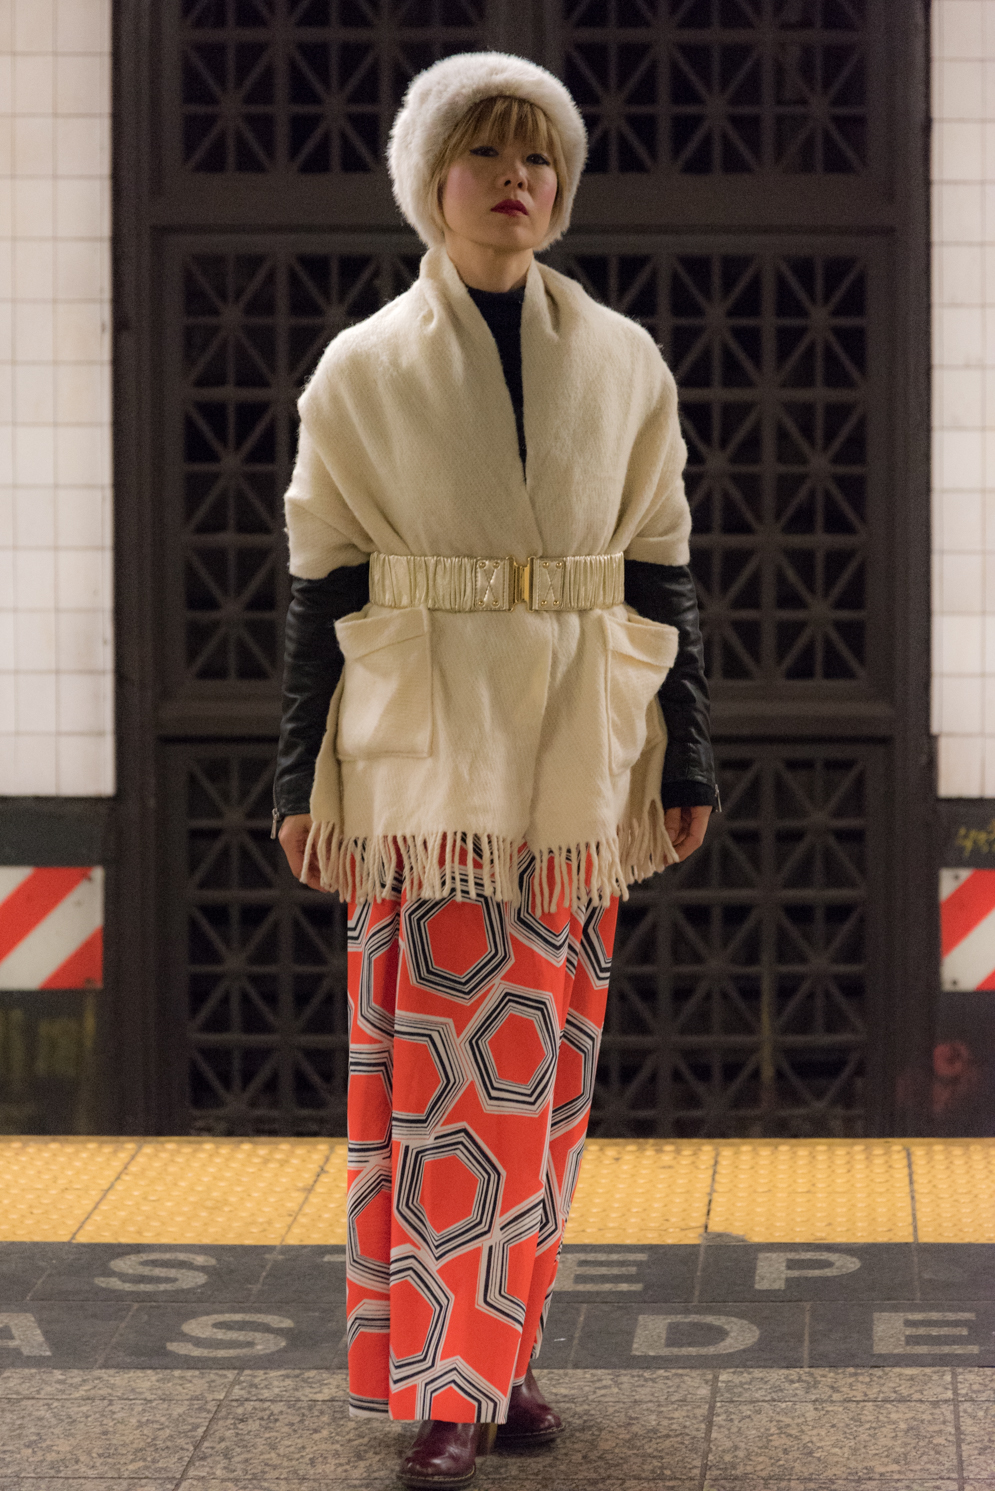 ROCK MAMA NYC LIFESTYLE BLOG - JAPANESE FLAG COLOR INSPIRATION